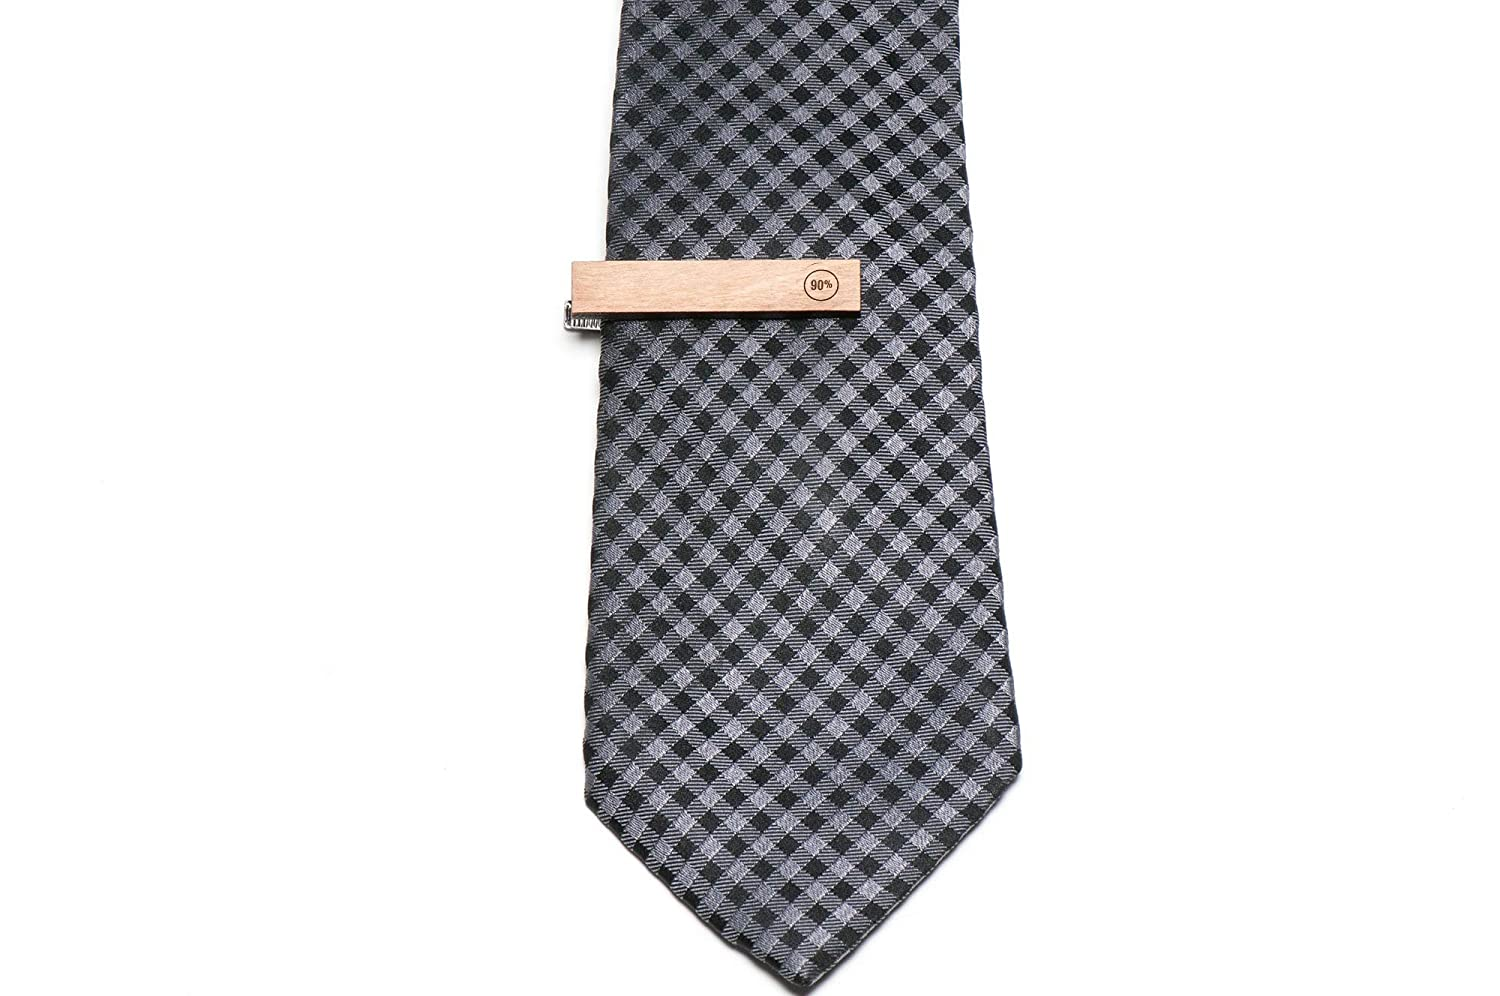 Wooden Accessories Company Wooden Tie Clips with Laser Engraved Ninety Percent Design Cherry Wood Tie Bar Engraved in The USA